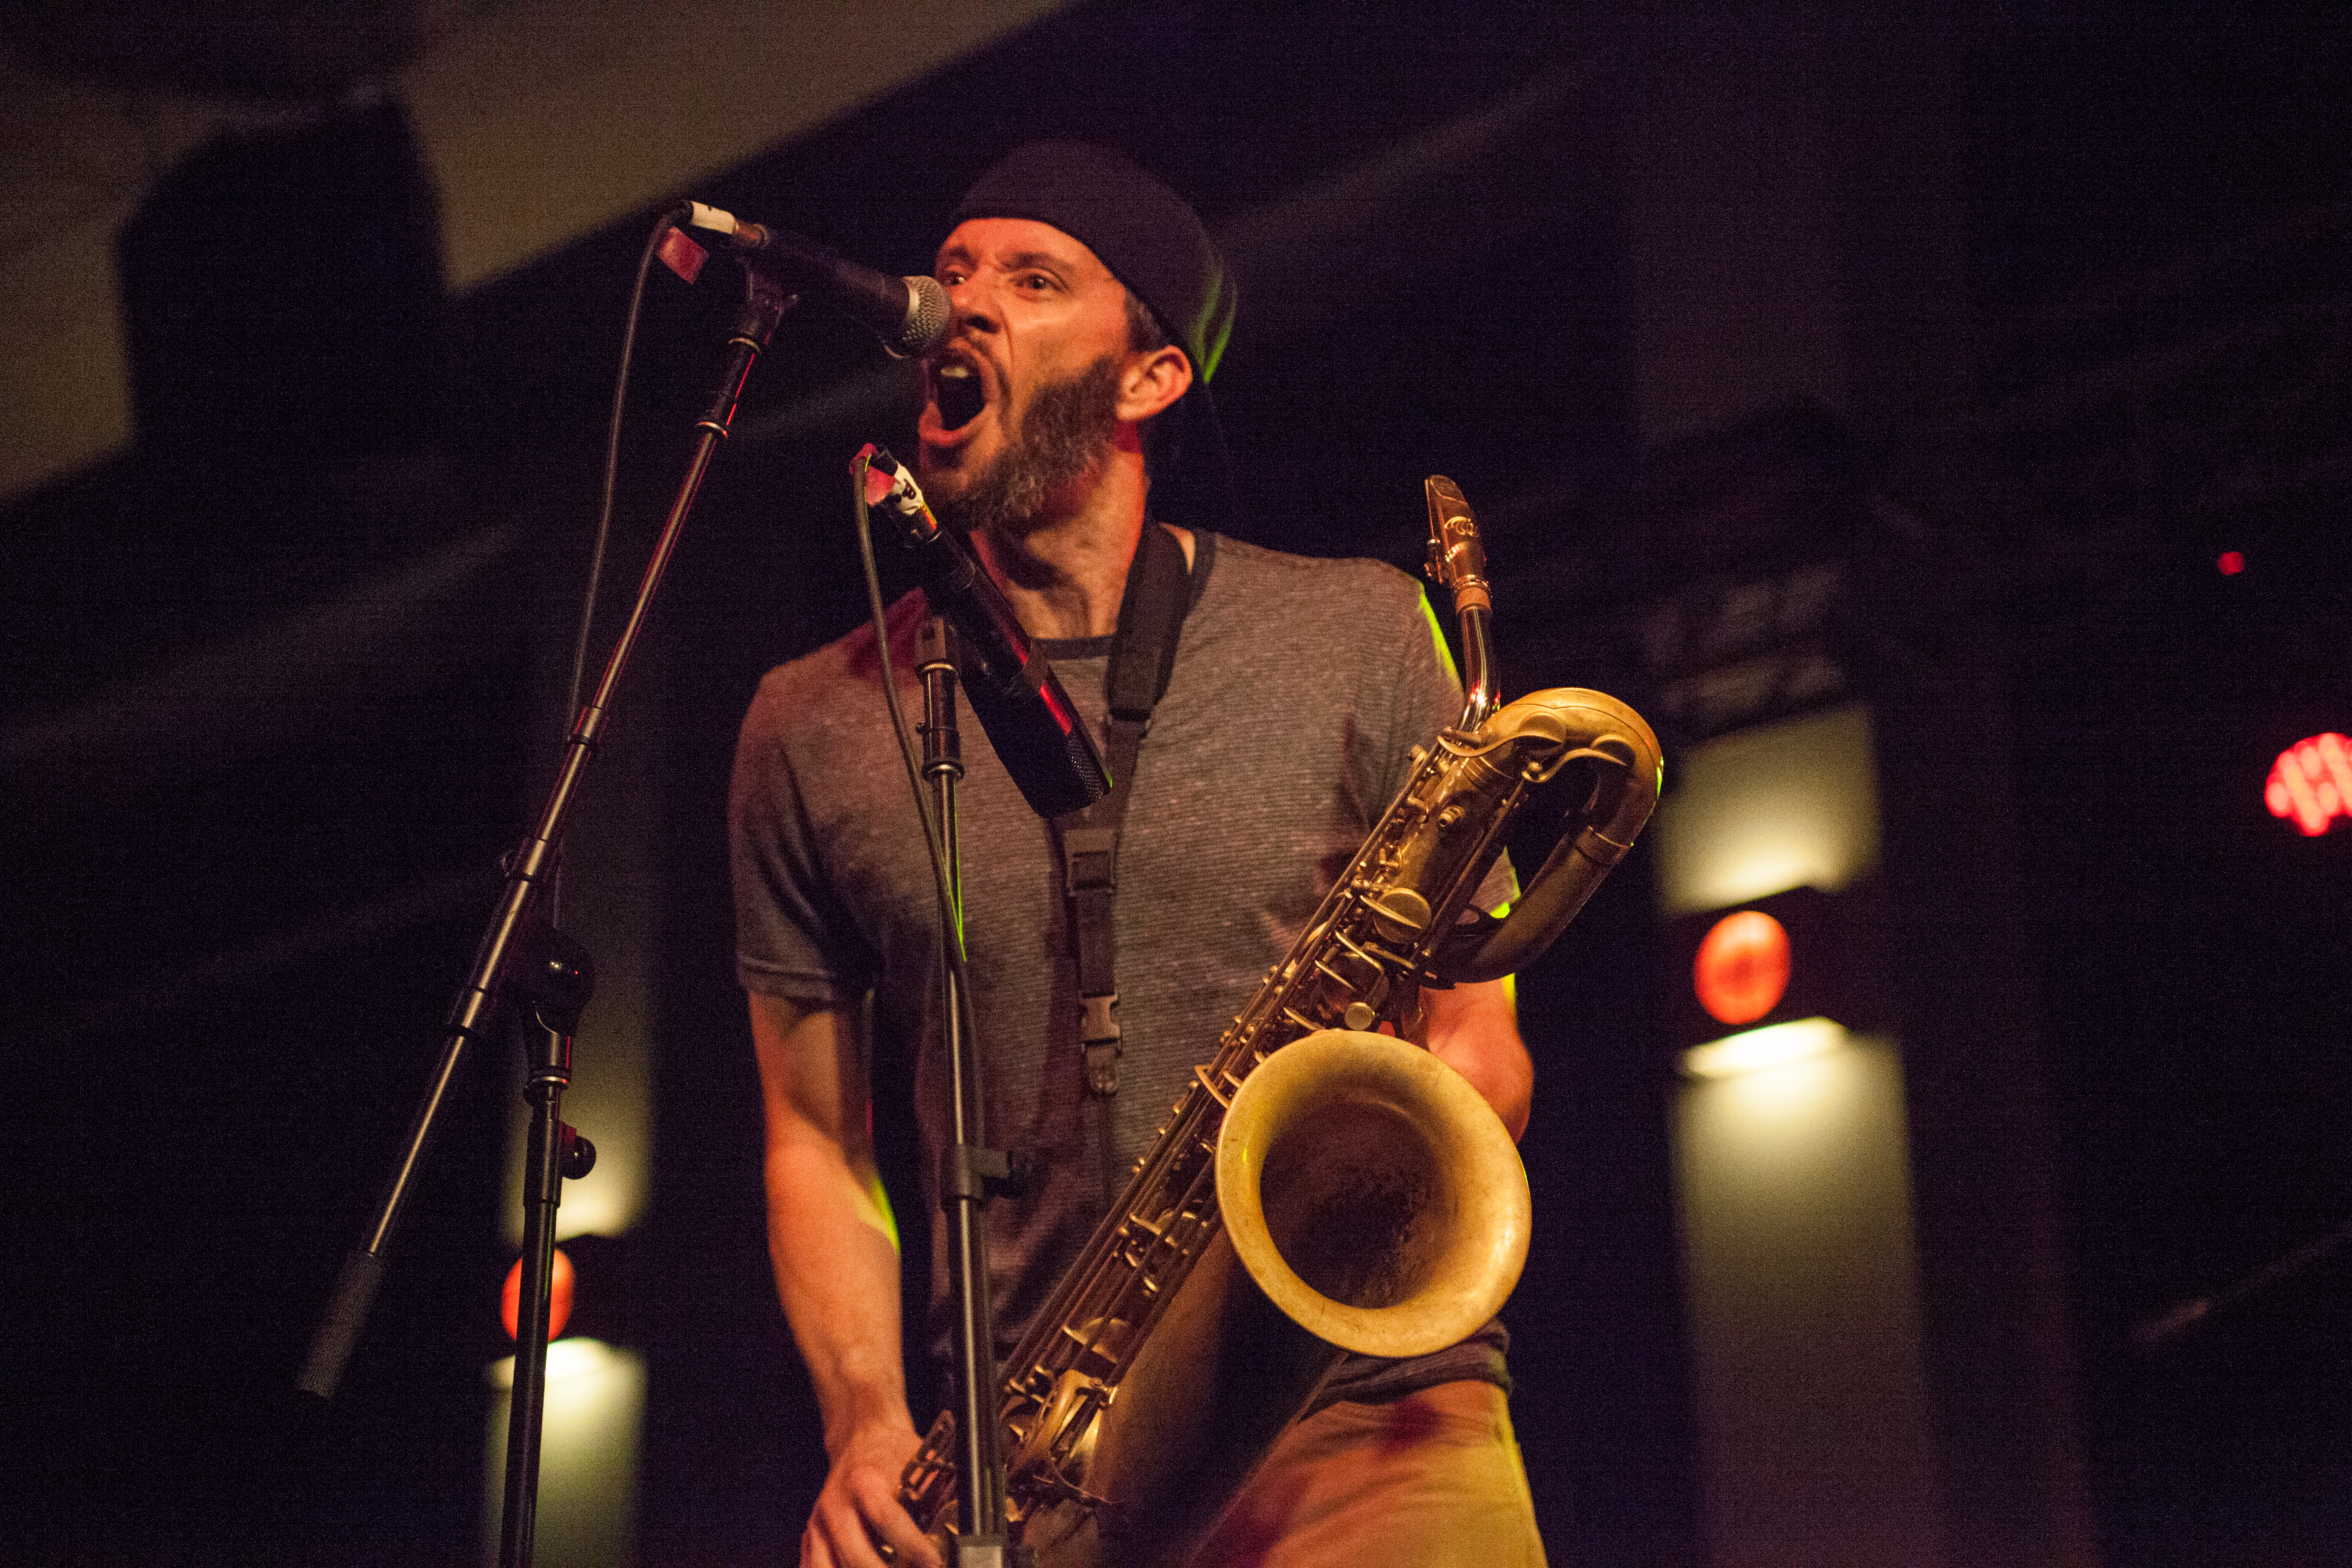 Mike Brown, above, plays the alto and baritone saxophone as well as contributing vocals. KRYSTEN MASSA / THE STATESMAN